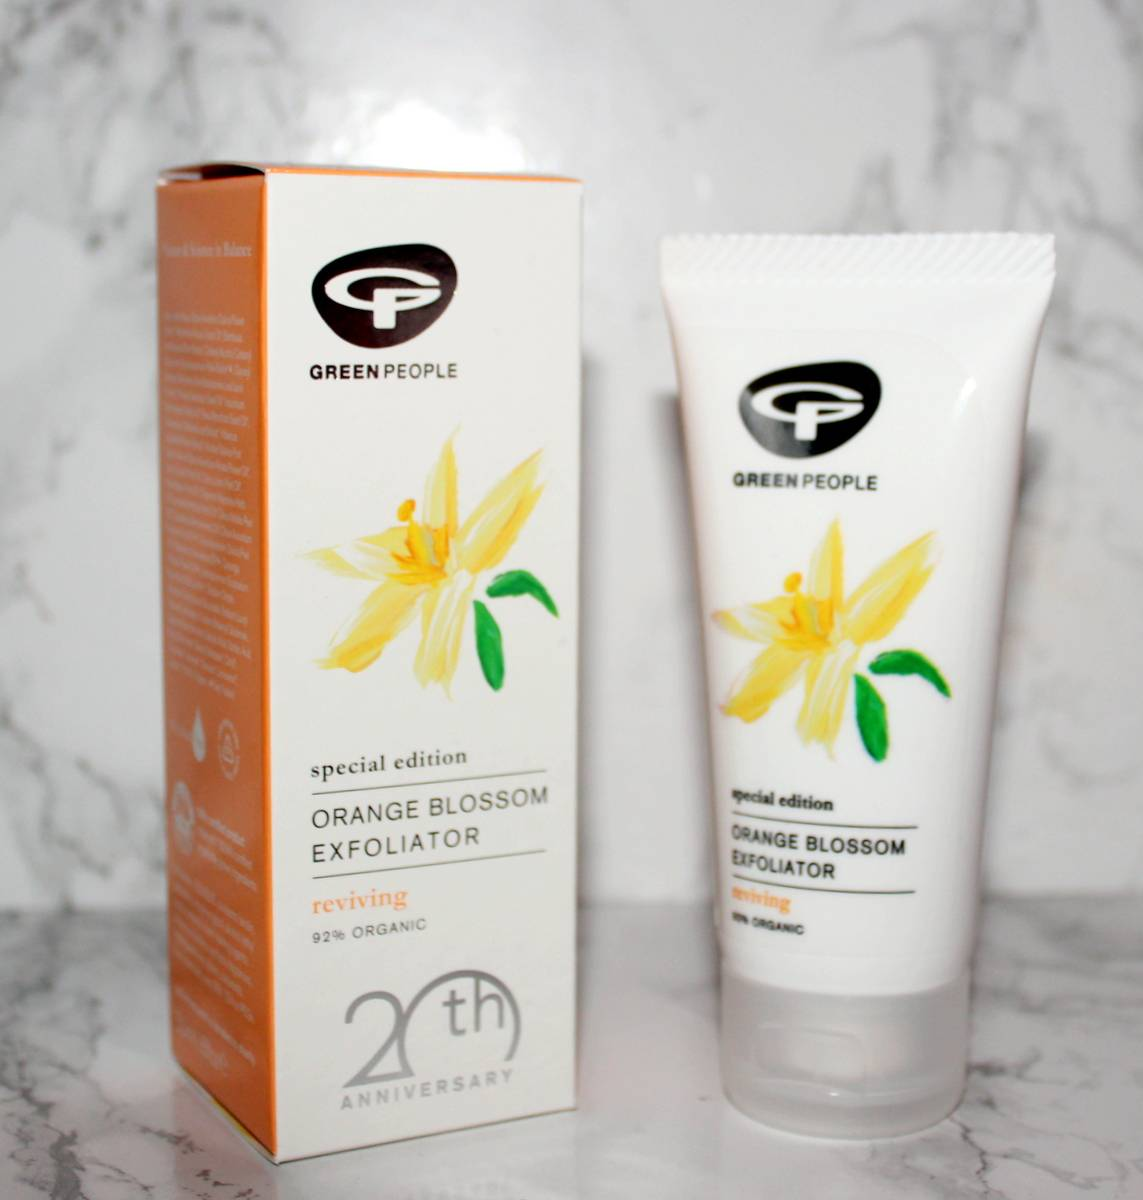 Green People Orange Blossom Exfoliato